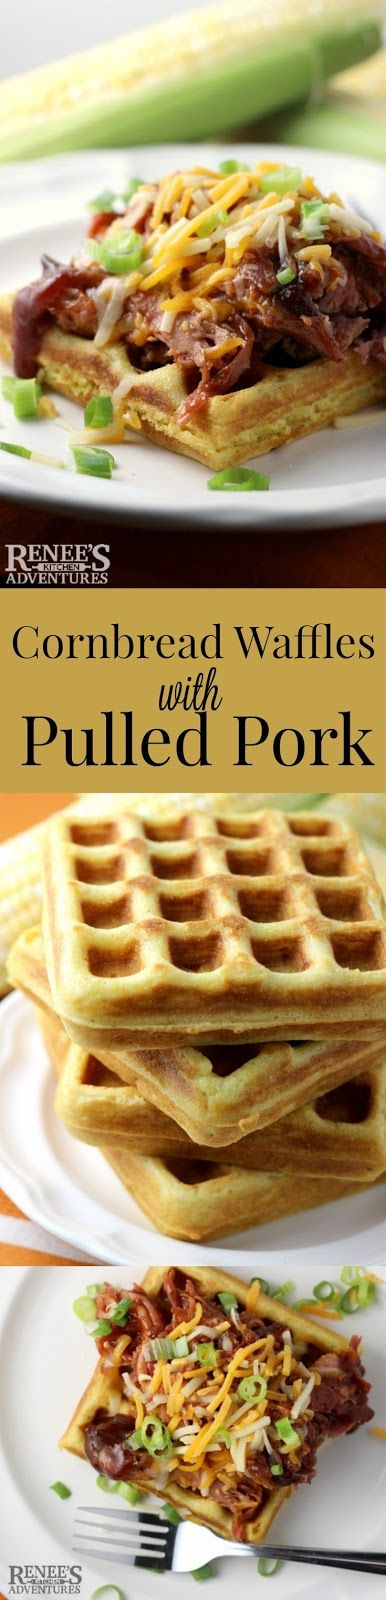 Cornbread Waffles with Pulled Pork | by Renee's Kitchen Adventures is an easy recipe for cornbread waffles topped with store-bought pulled pork for a fun and easy dinner idea!  #SundaySupper